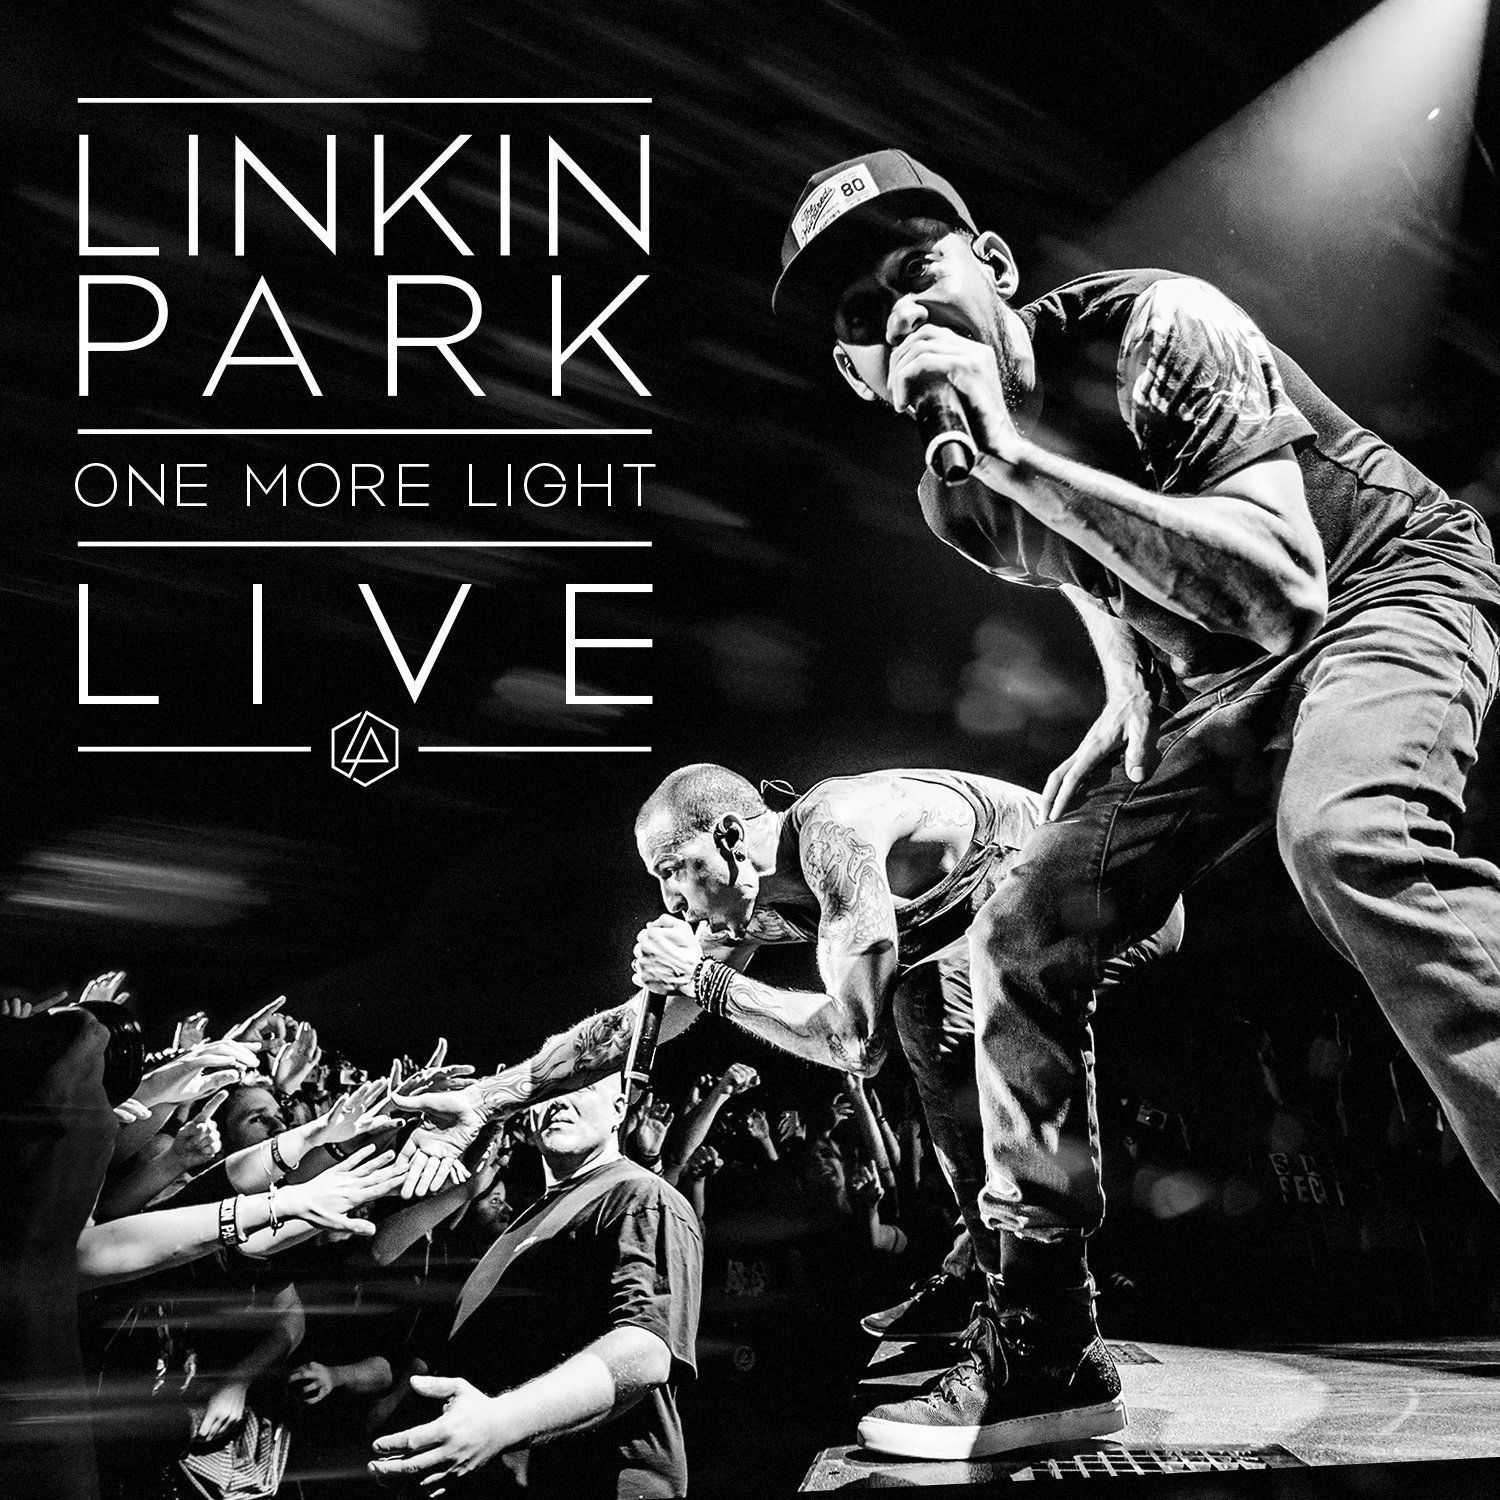 New Album Releases One More Night Live Linkin Park Linkin Park Linkin Park Chester Live Concert